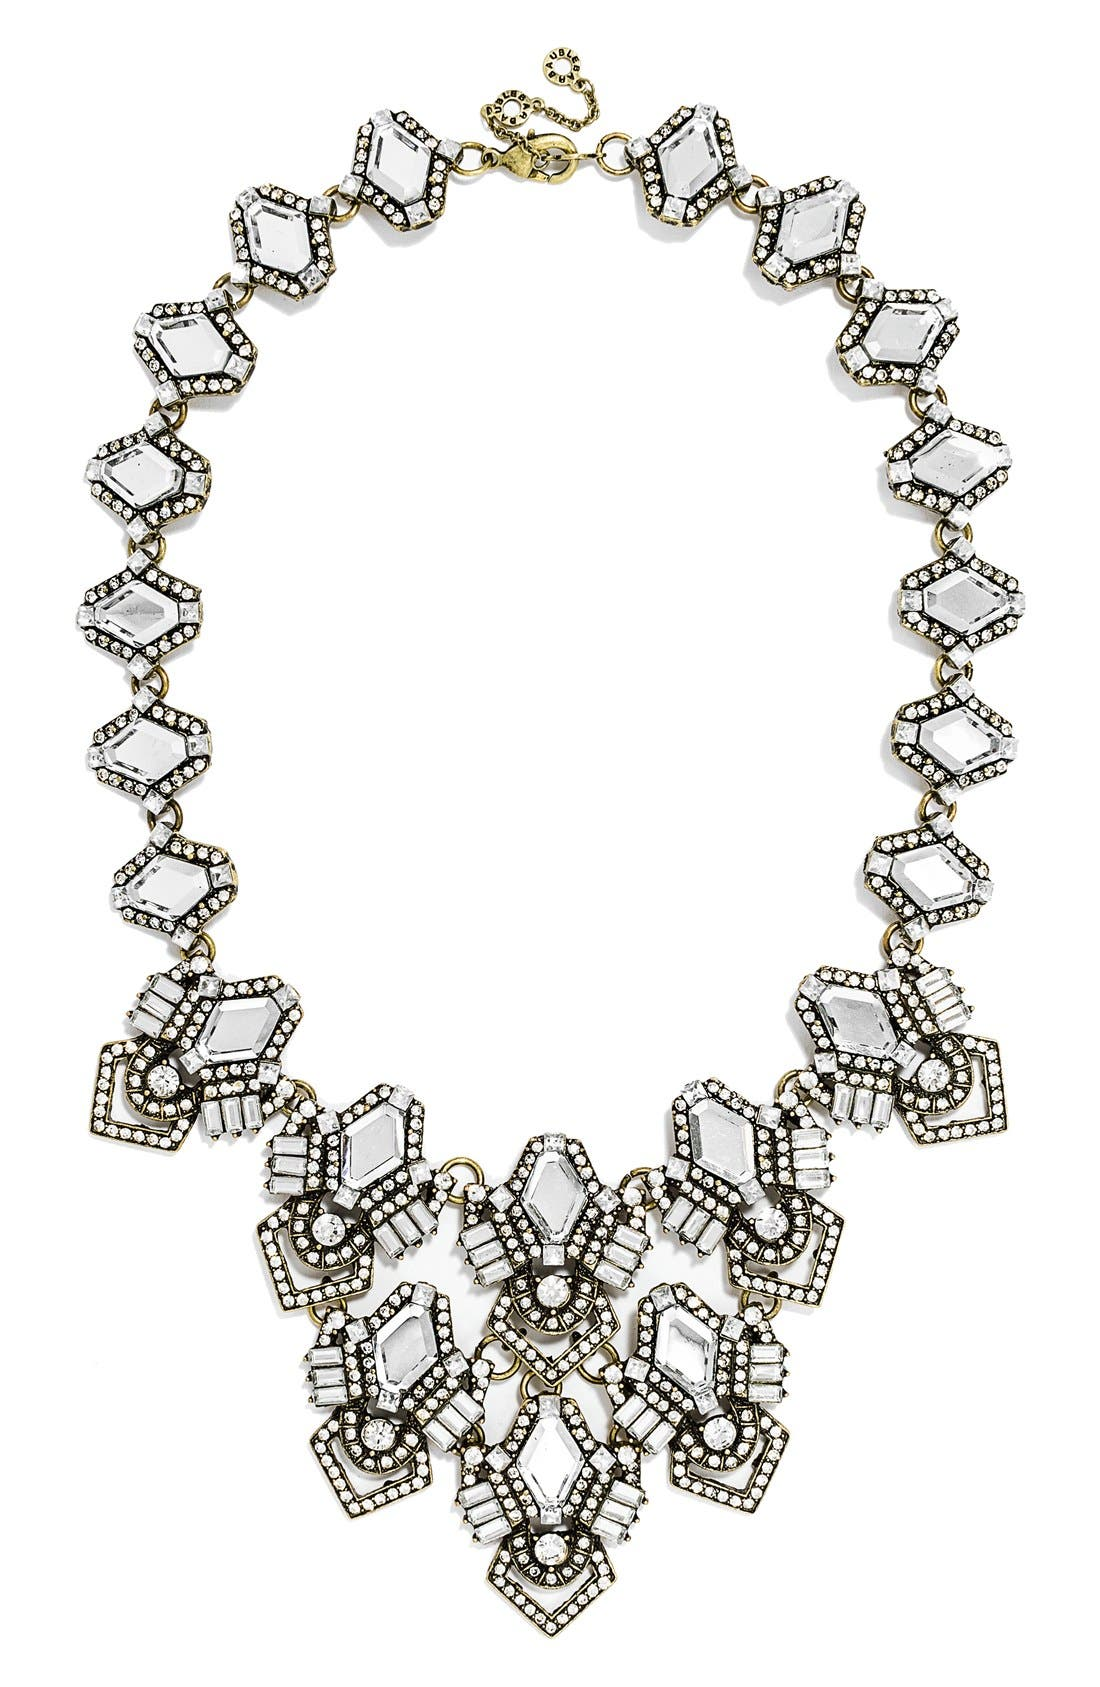 Main Image - BaubleBar 'Deco Diamond' Bib Necklace